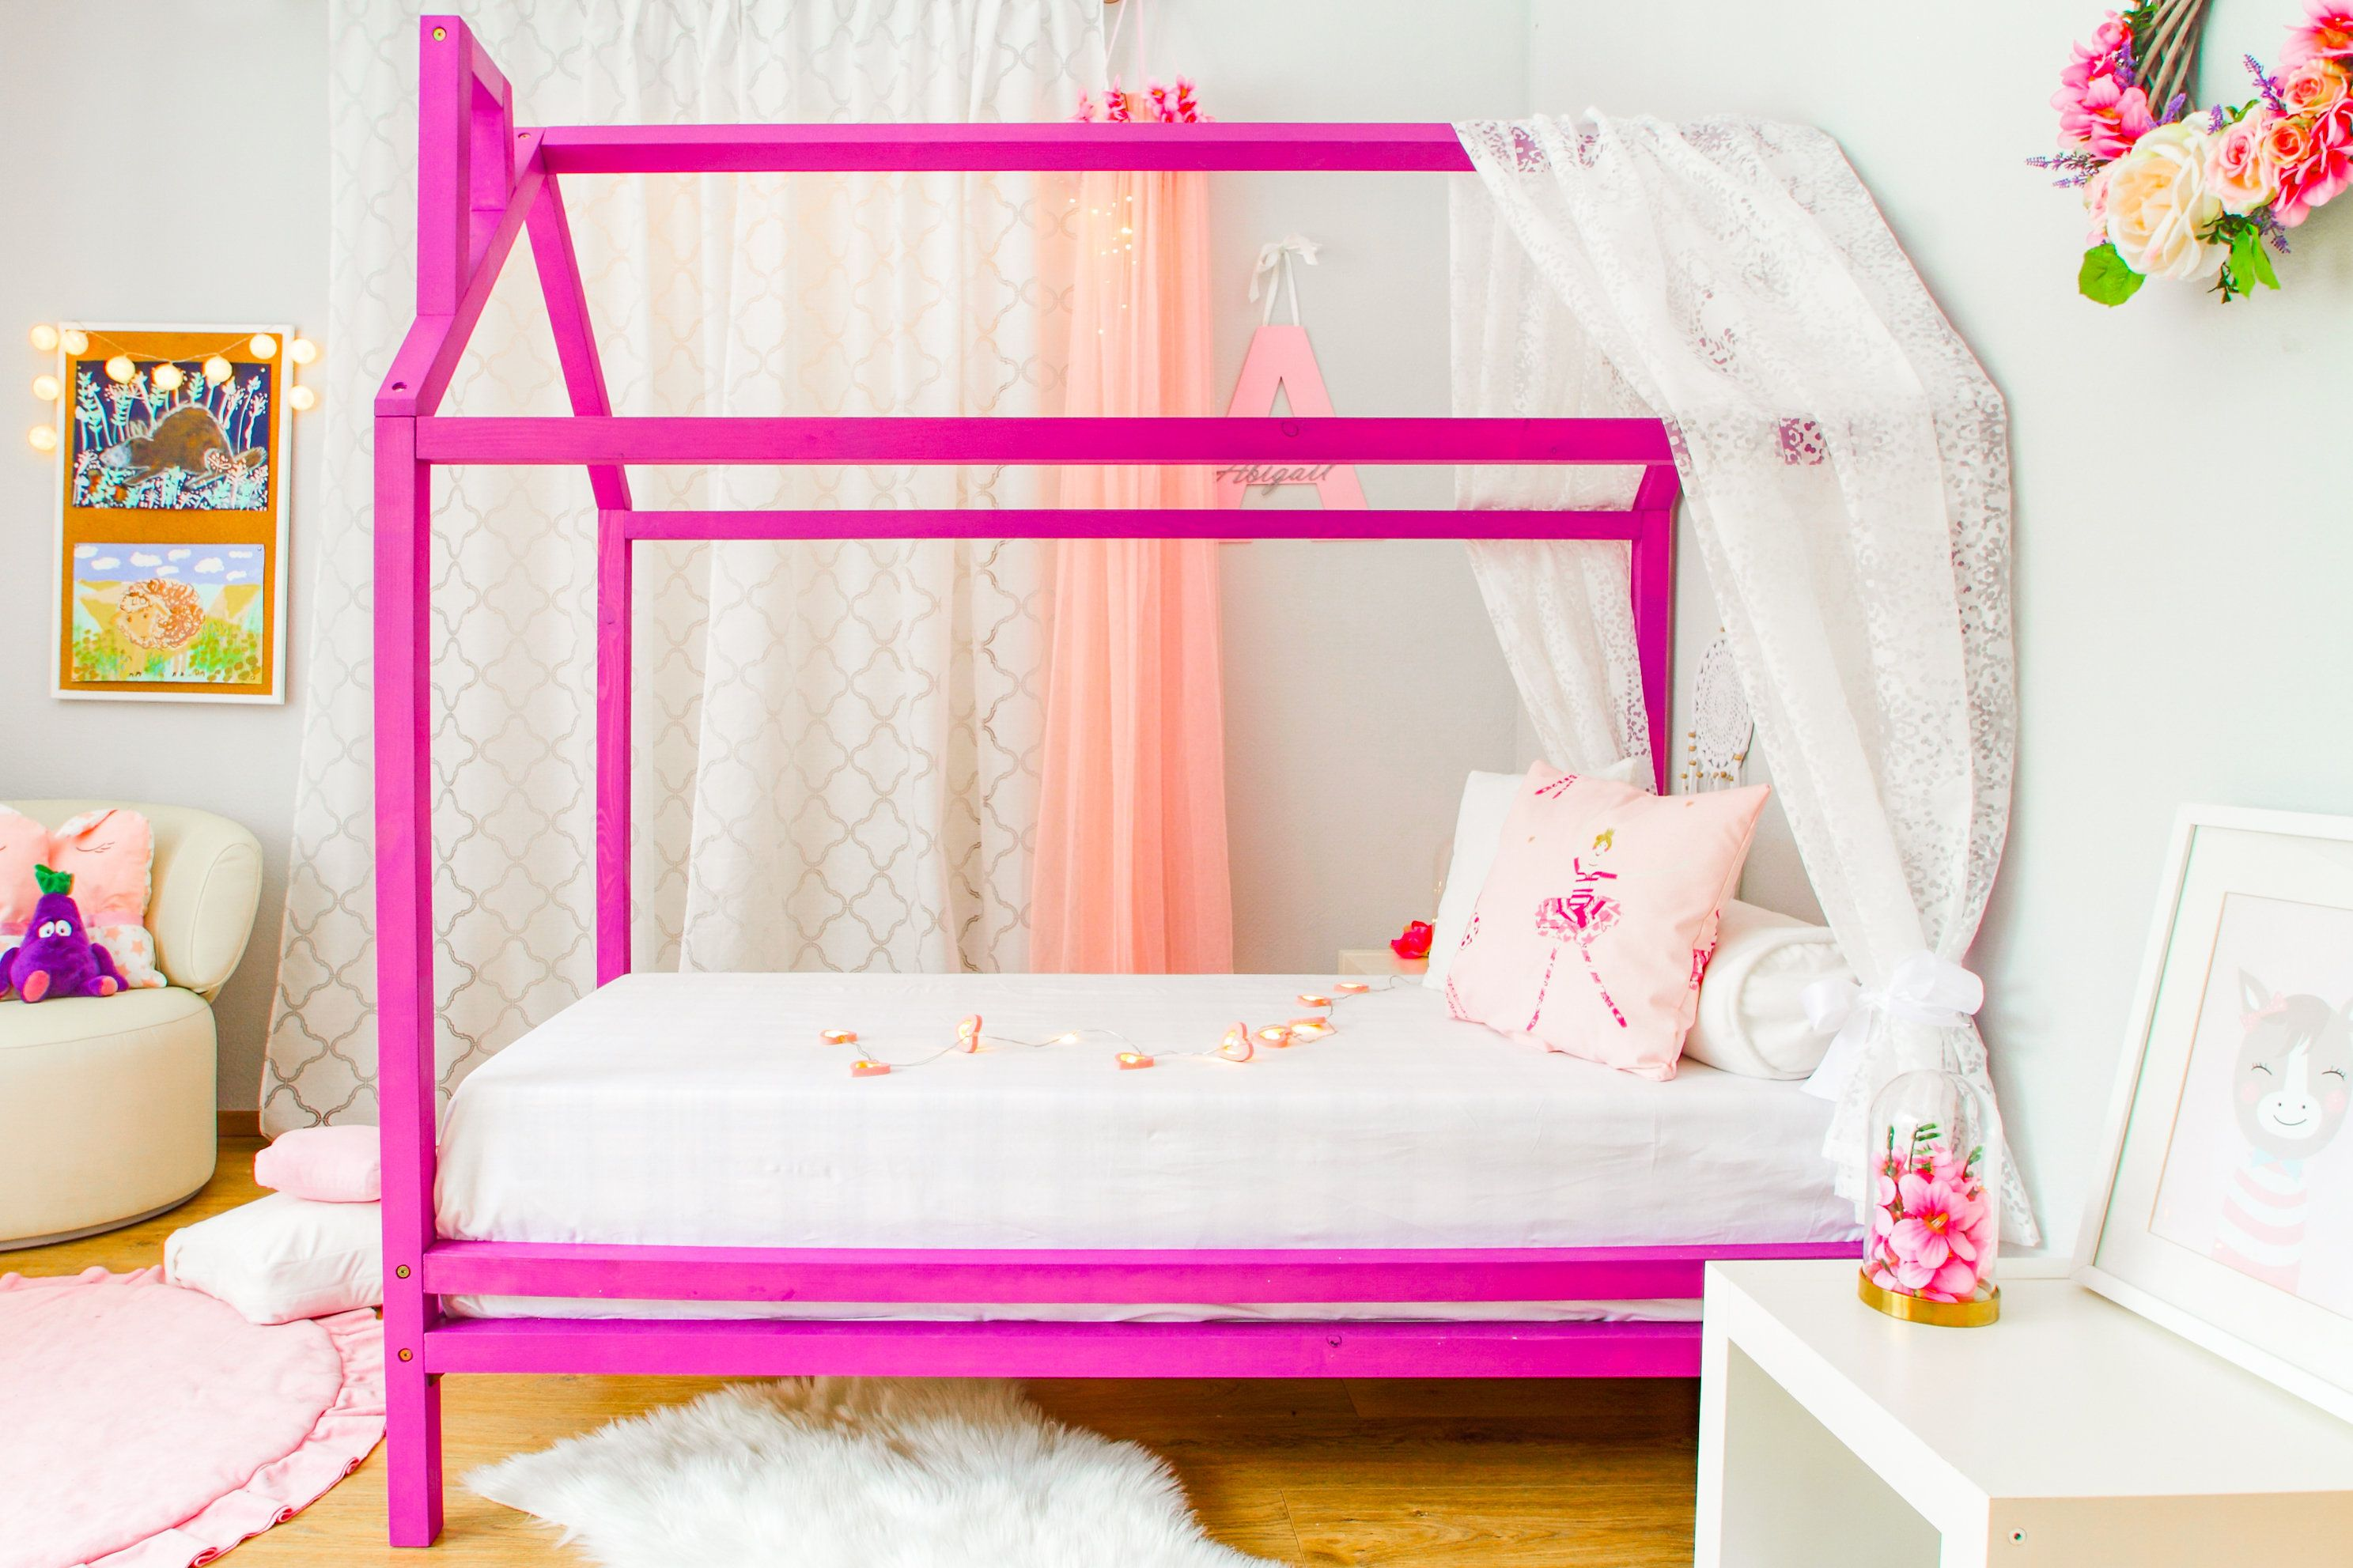 Eco Wooden Playhouse Bed Montessori House Bed For Toddler Frame